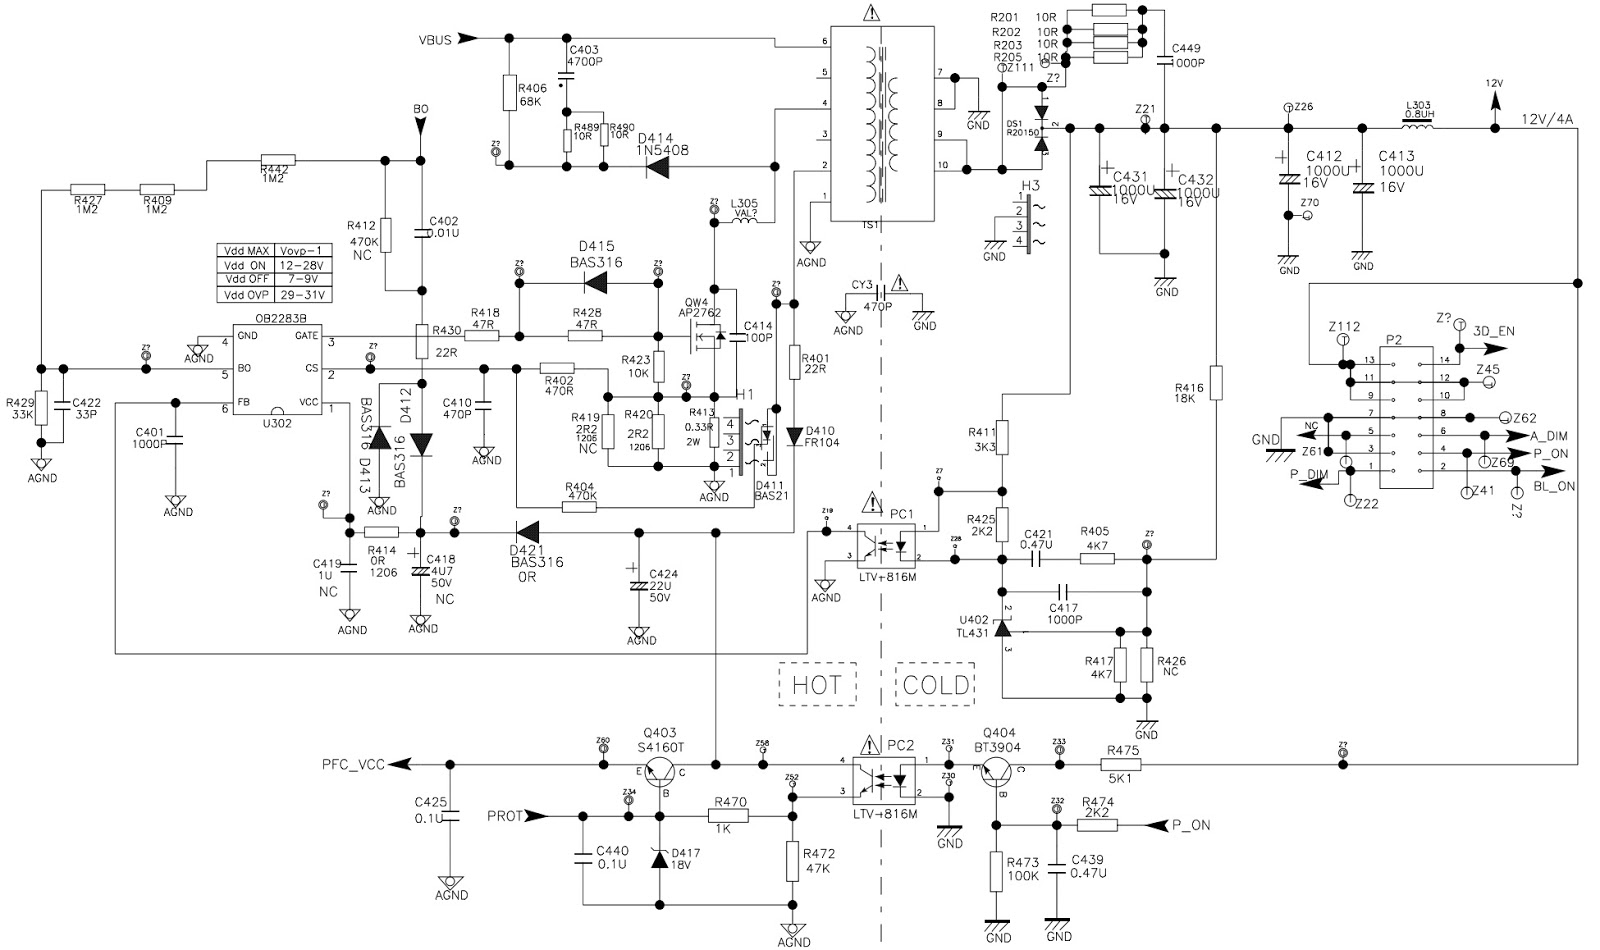 tcl les9b21 lcd tv power supply regulator schematic electrotricks figure 2 block diagram of an lcd tv power supply [ 1600 x 950 Pixel ]